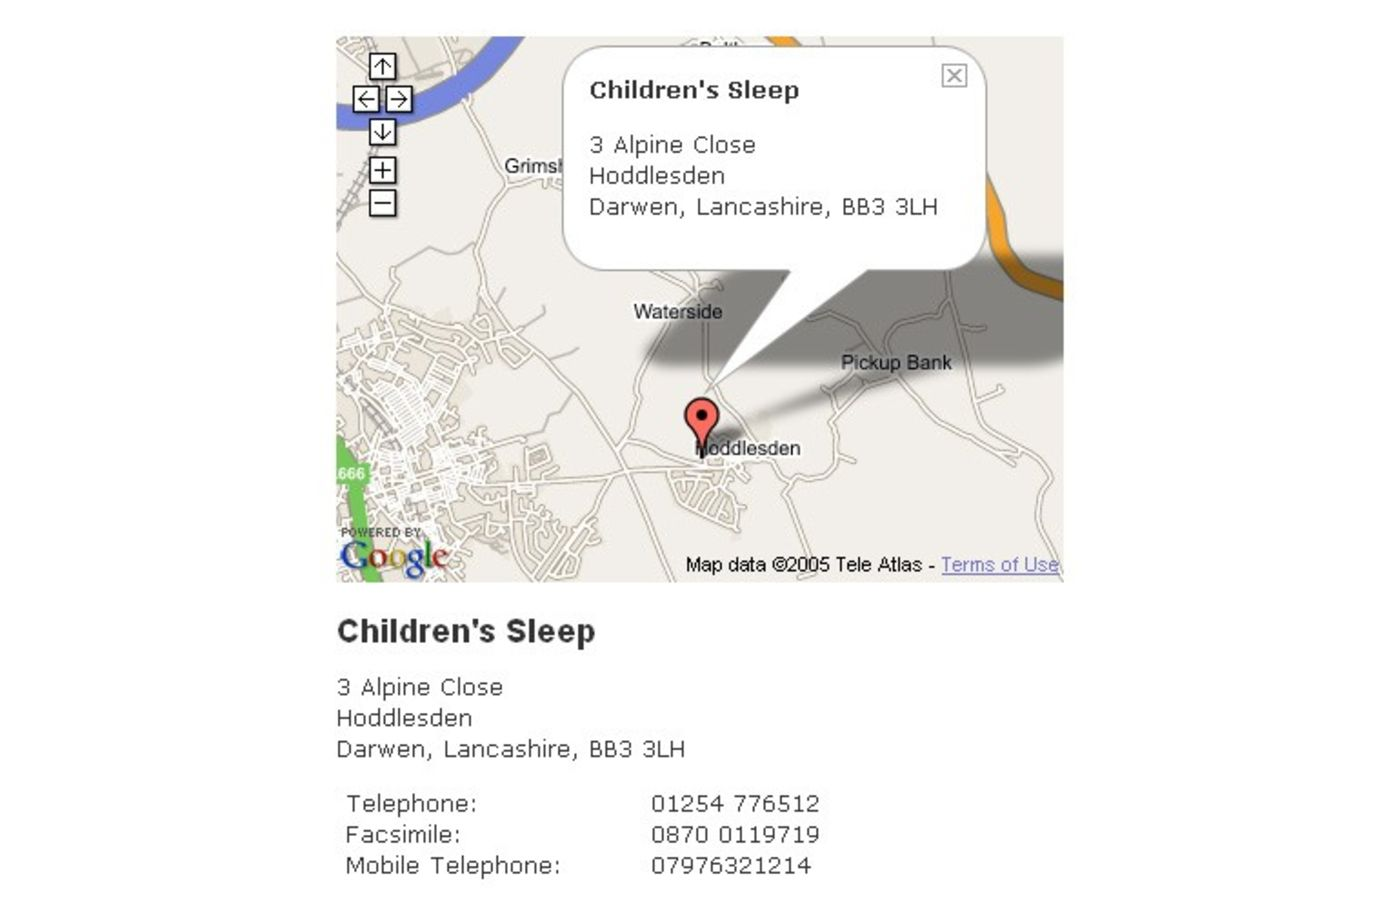 Childrens Sleep Contact details